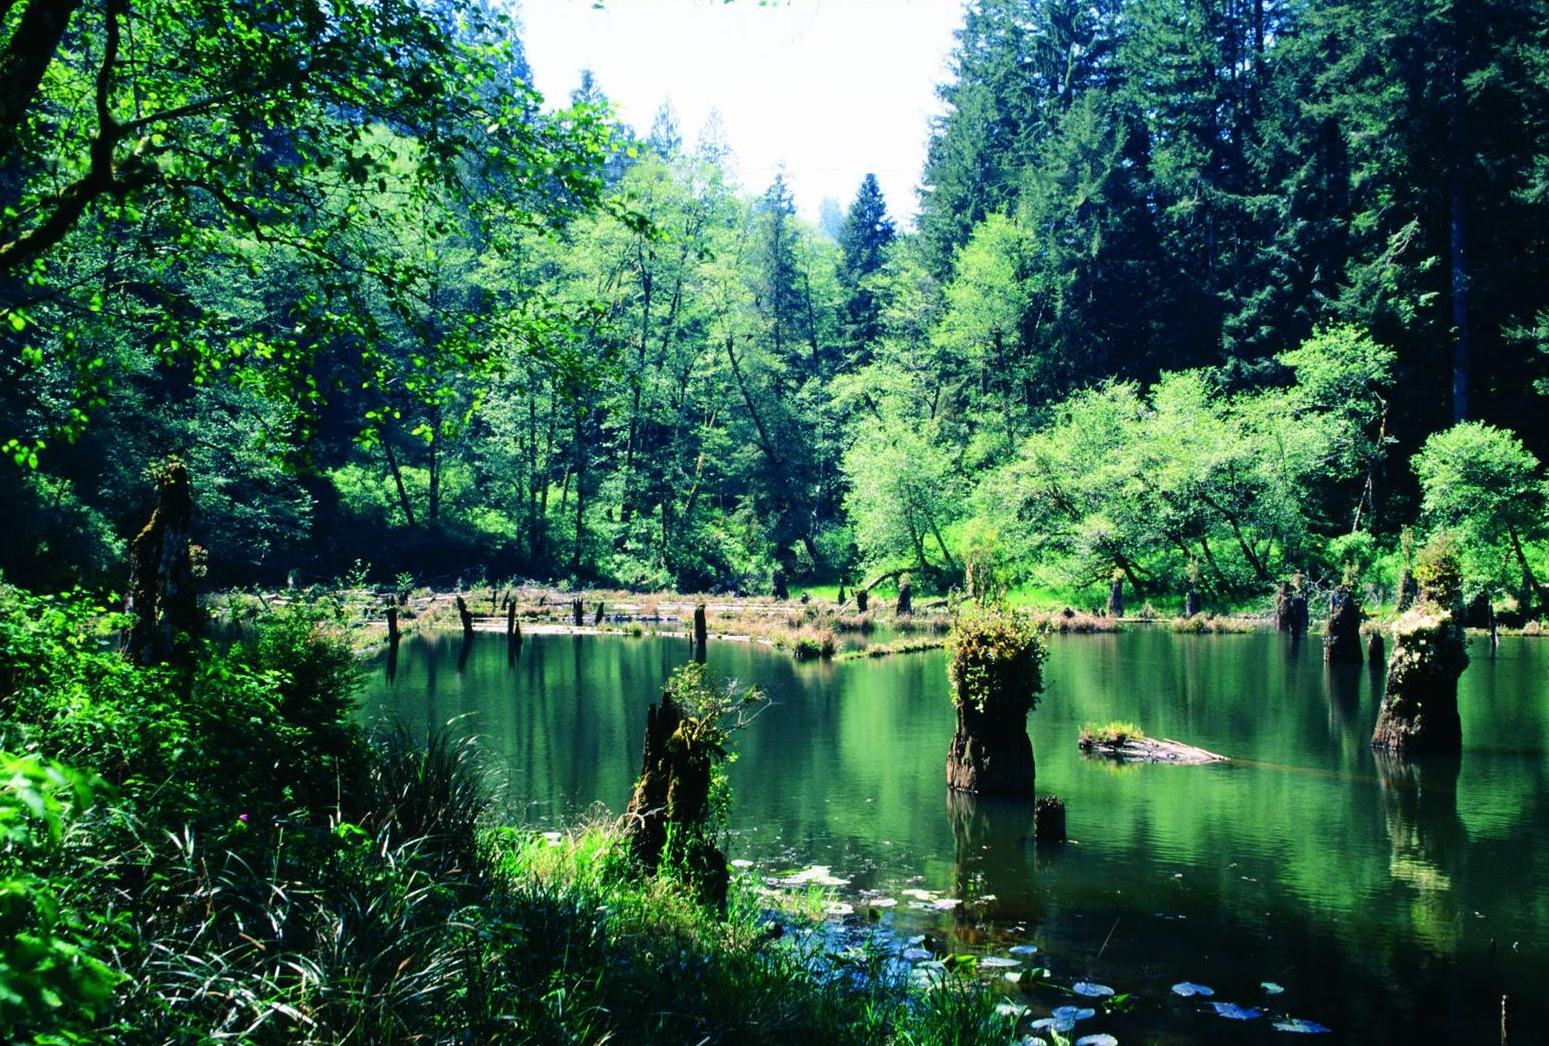 - Figure 1. Wasson Lake in the Devil's Staircase Wilderness, established in 2019. Source: George Wuerthner, first appearing in the author's book Oregon Wild: Endangered Forest Wilderness (Timber Press, 2004).